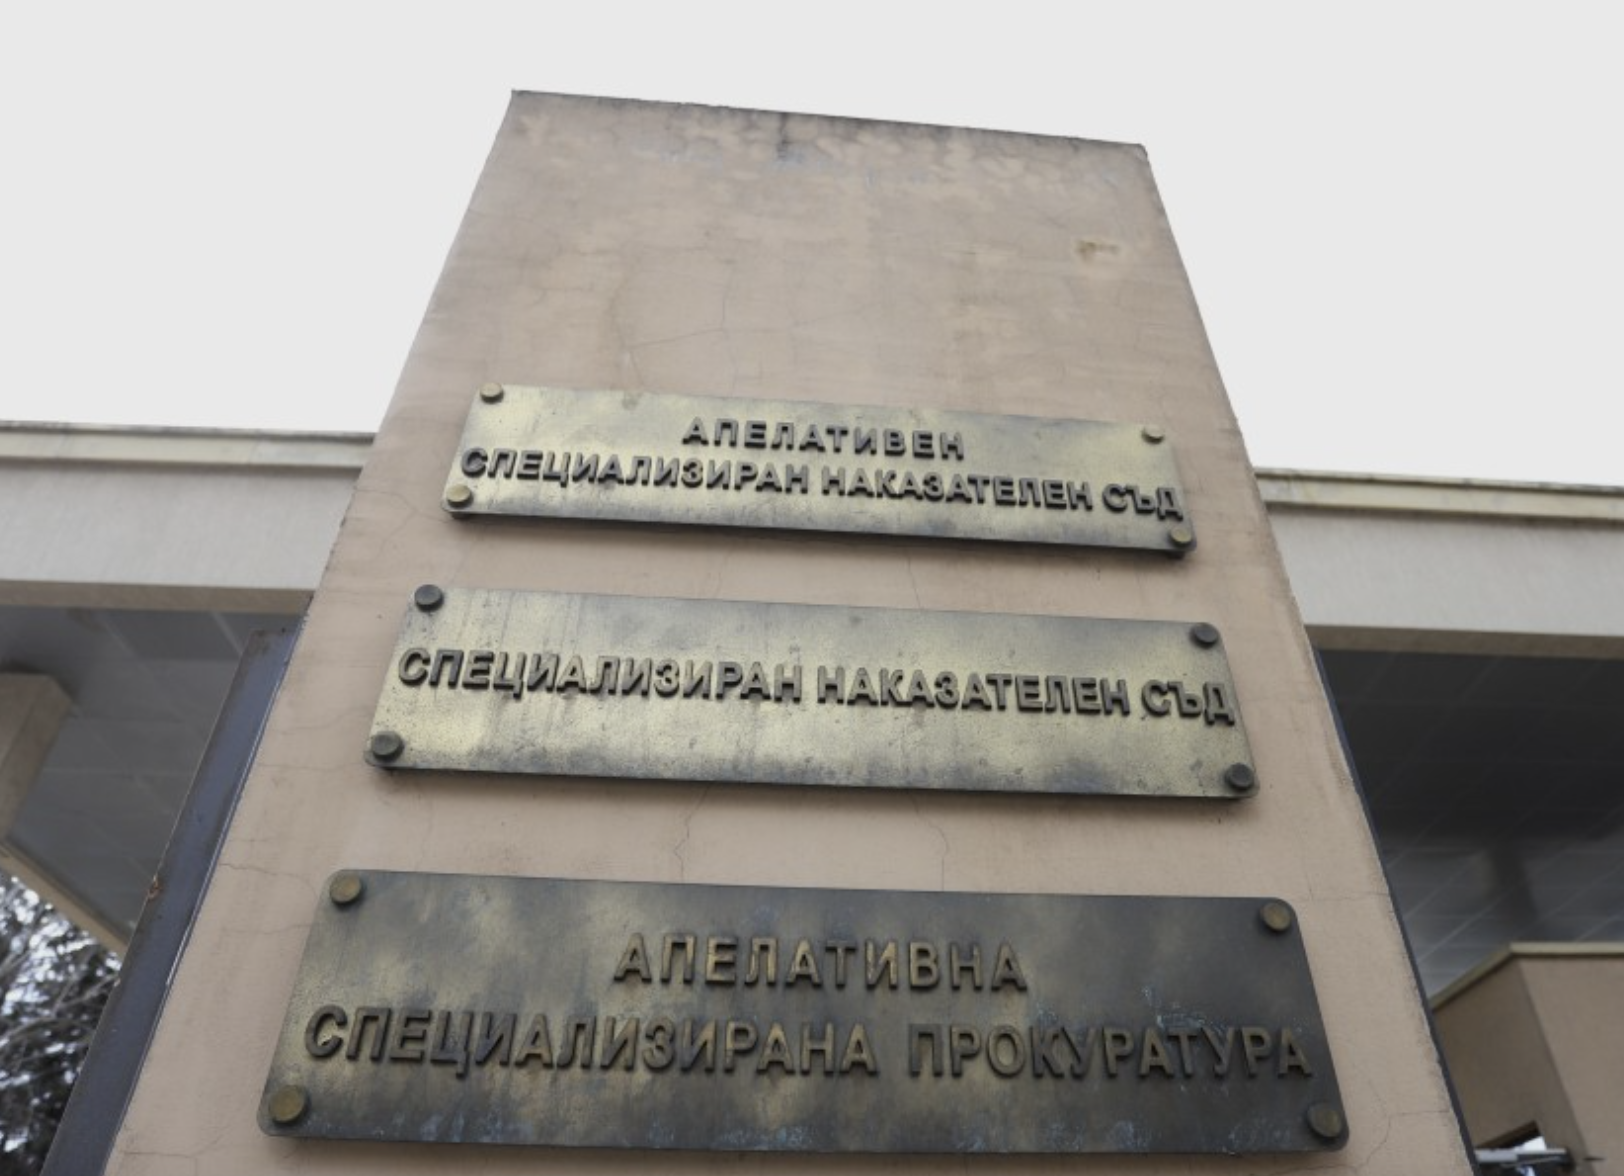 Bulgaria: Specialized Prosecutor's Office charges leader of political party with espionage